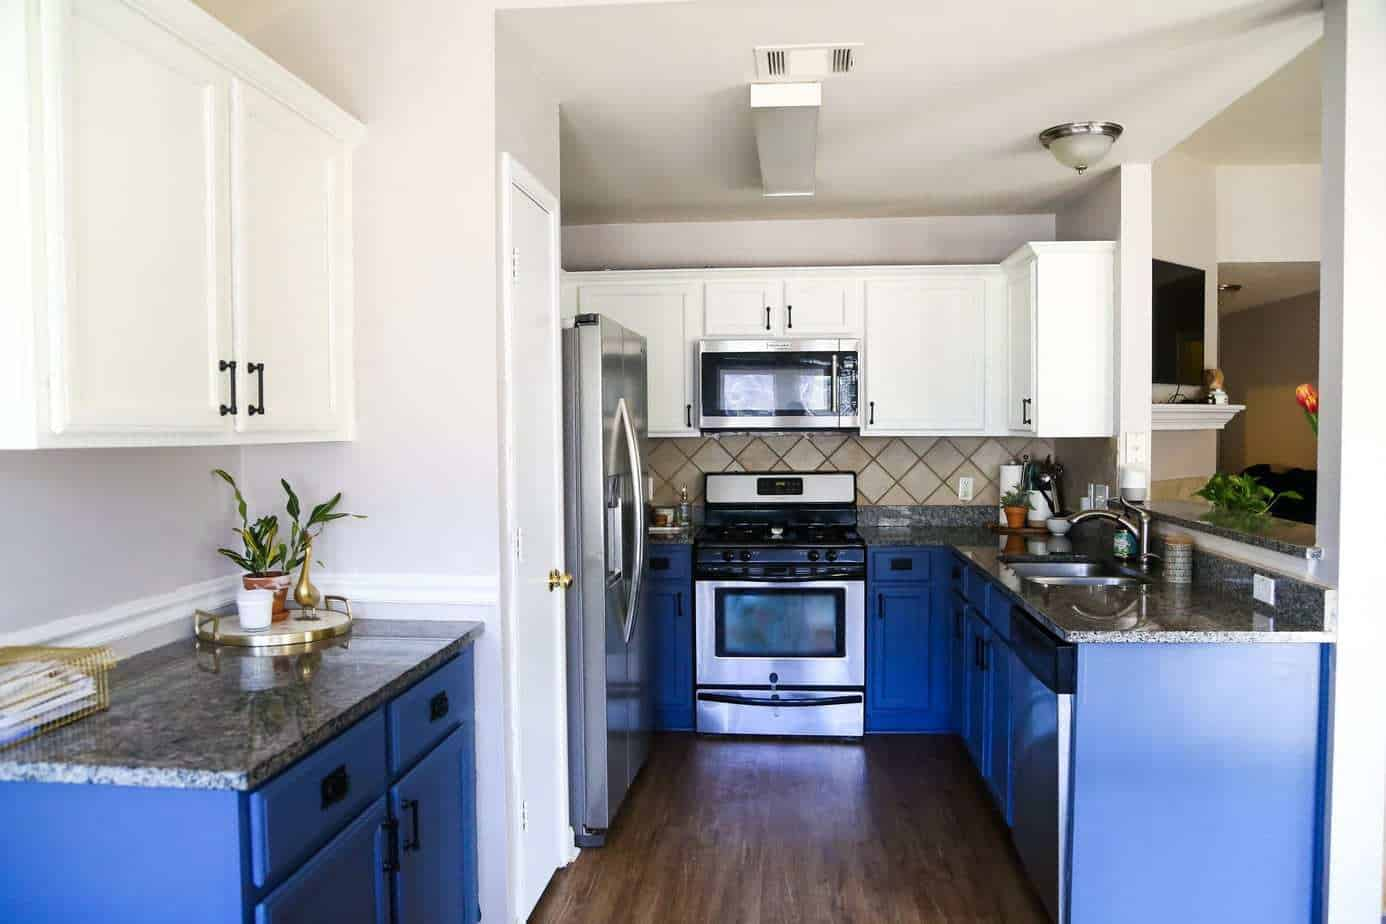 Our DIY Blue & White Kitchen Cabinets